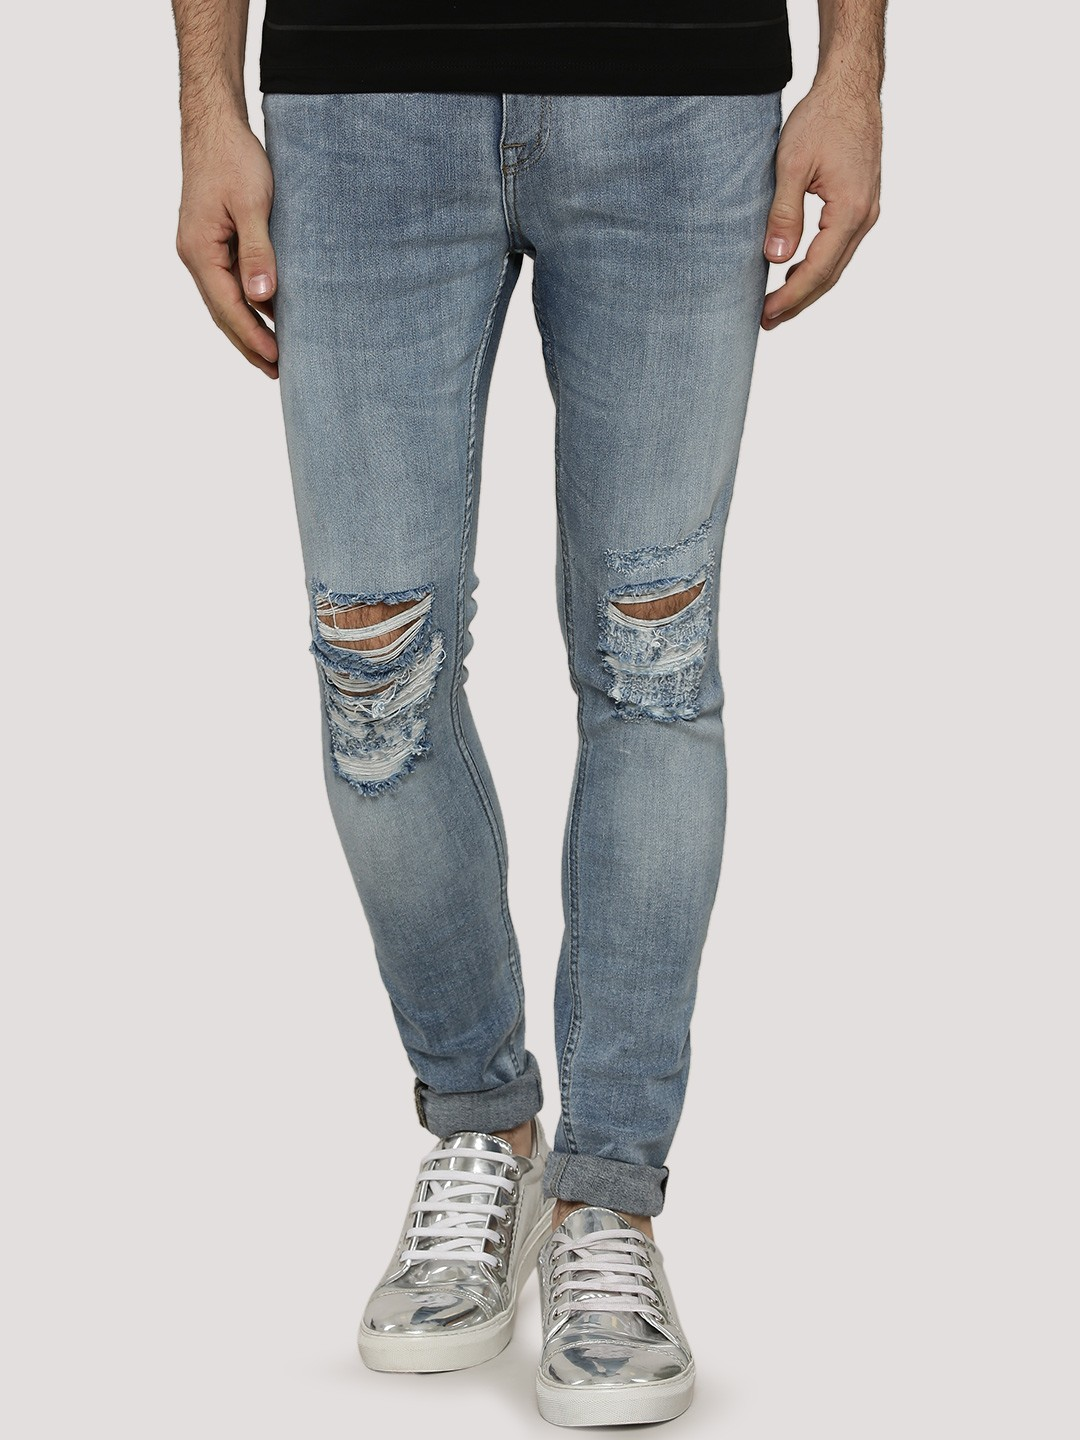 Buy NEW LOOK Light Wash Ripped Skinny Jeans For Men - Men's Blue ...